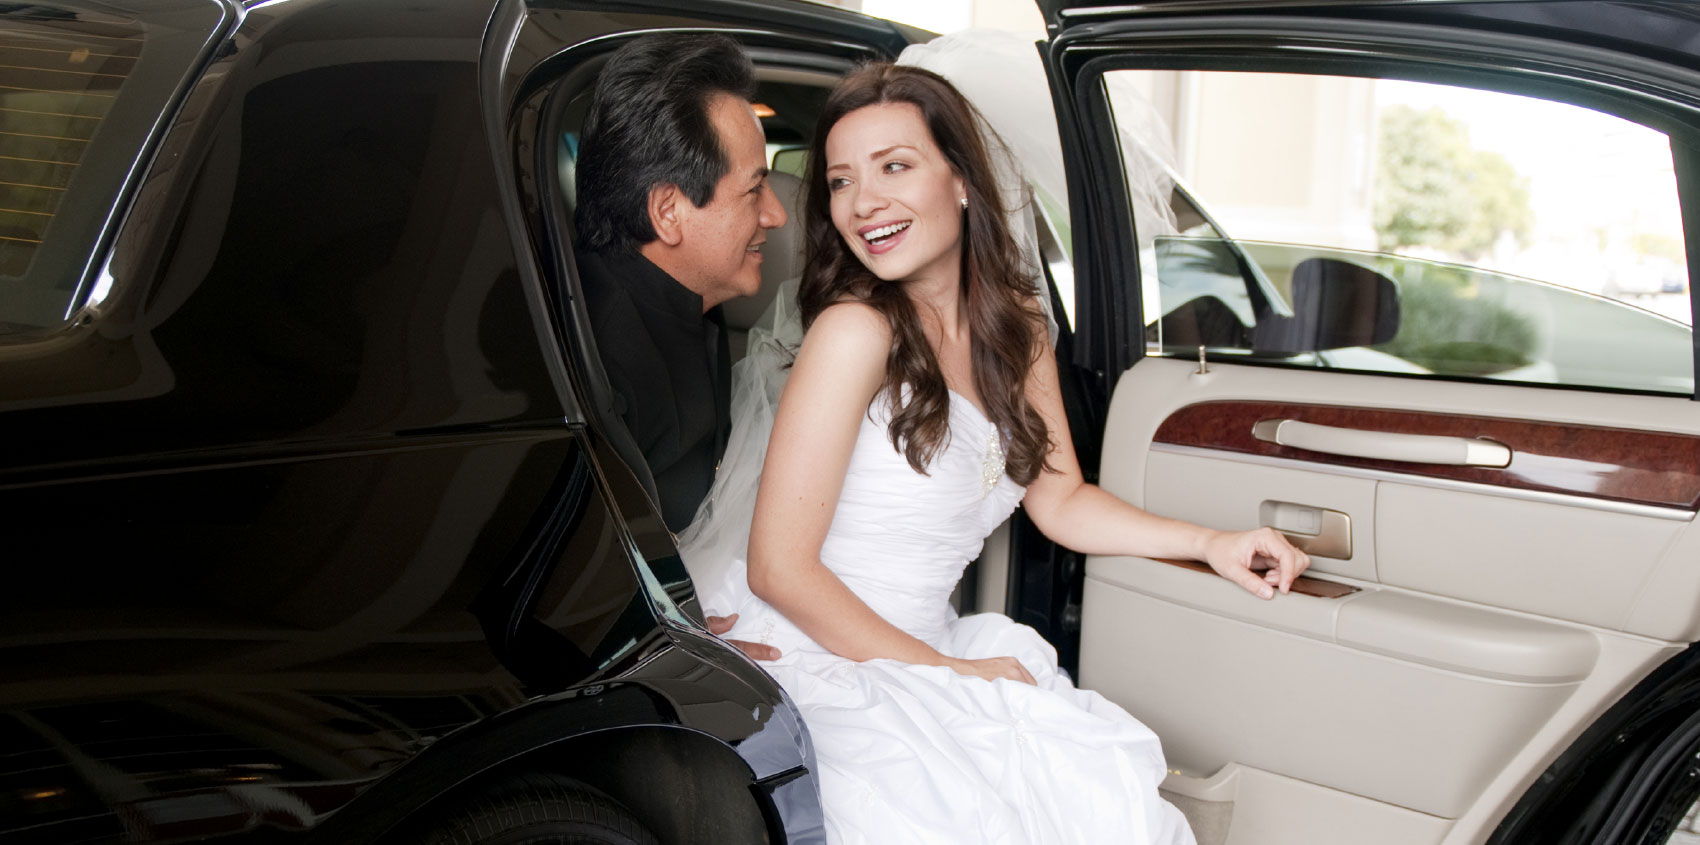 The Benefits Of Hiring A Limousine Service To The Airport